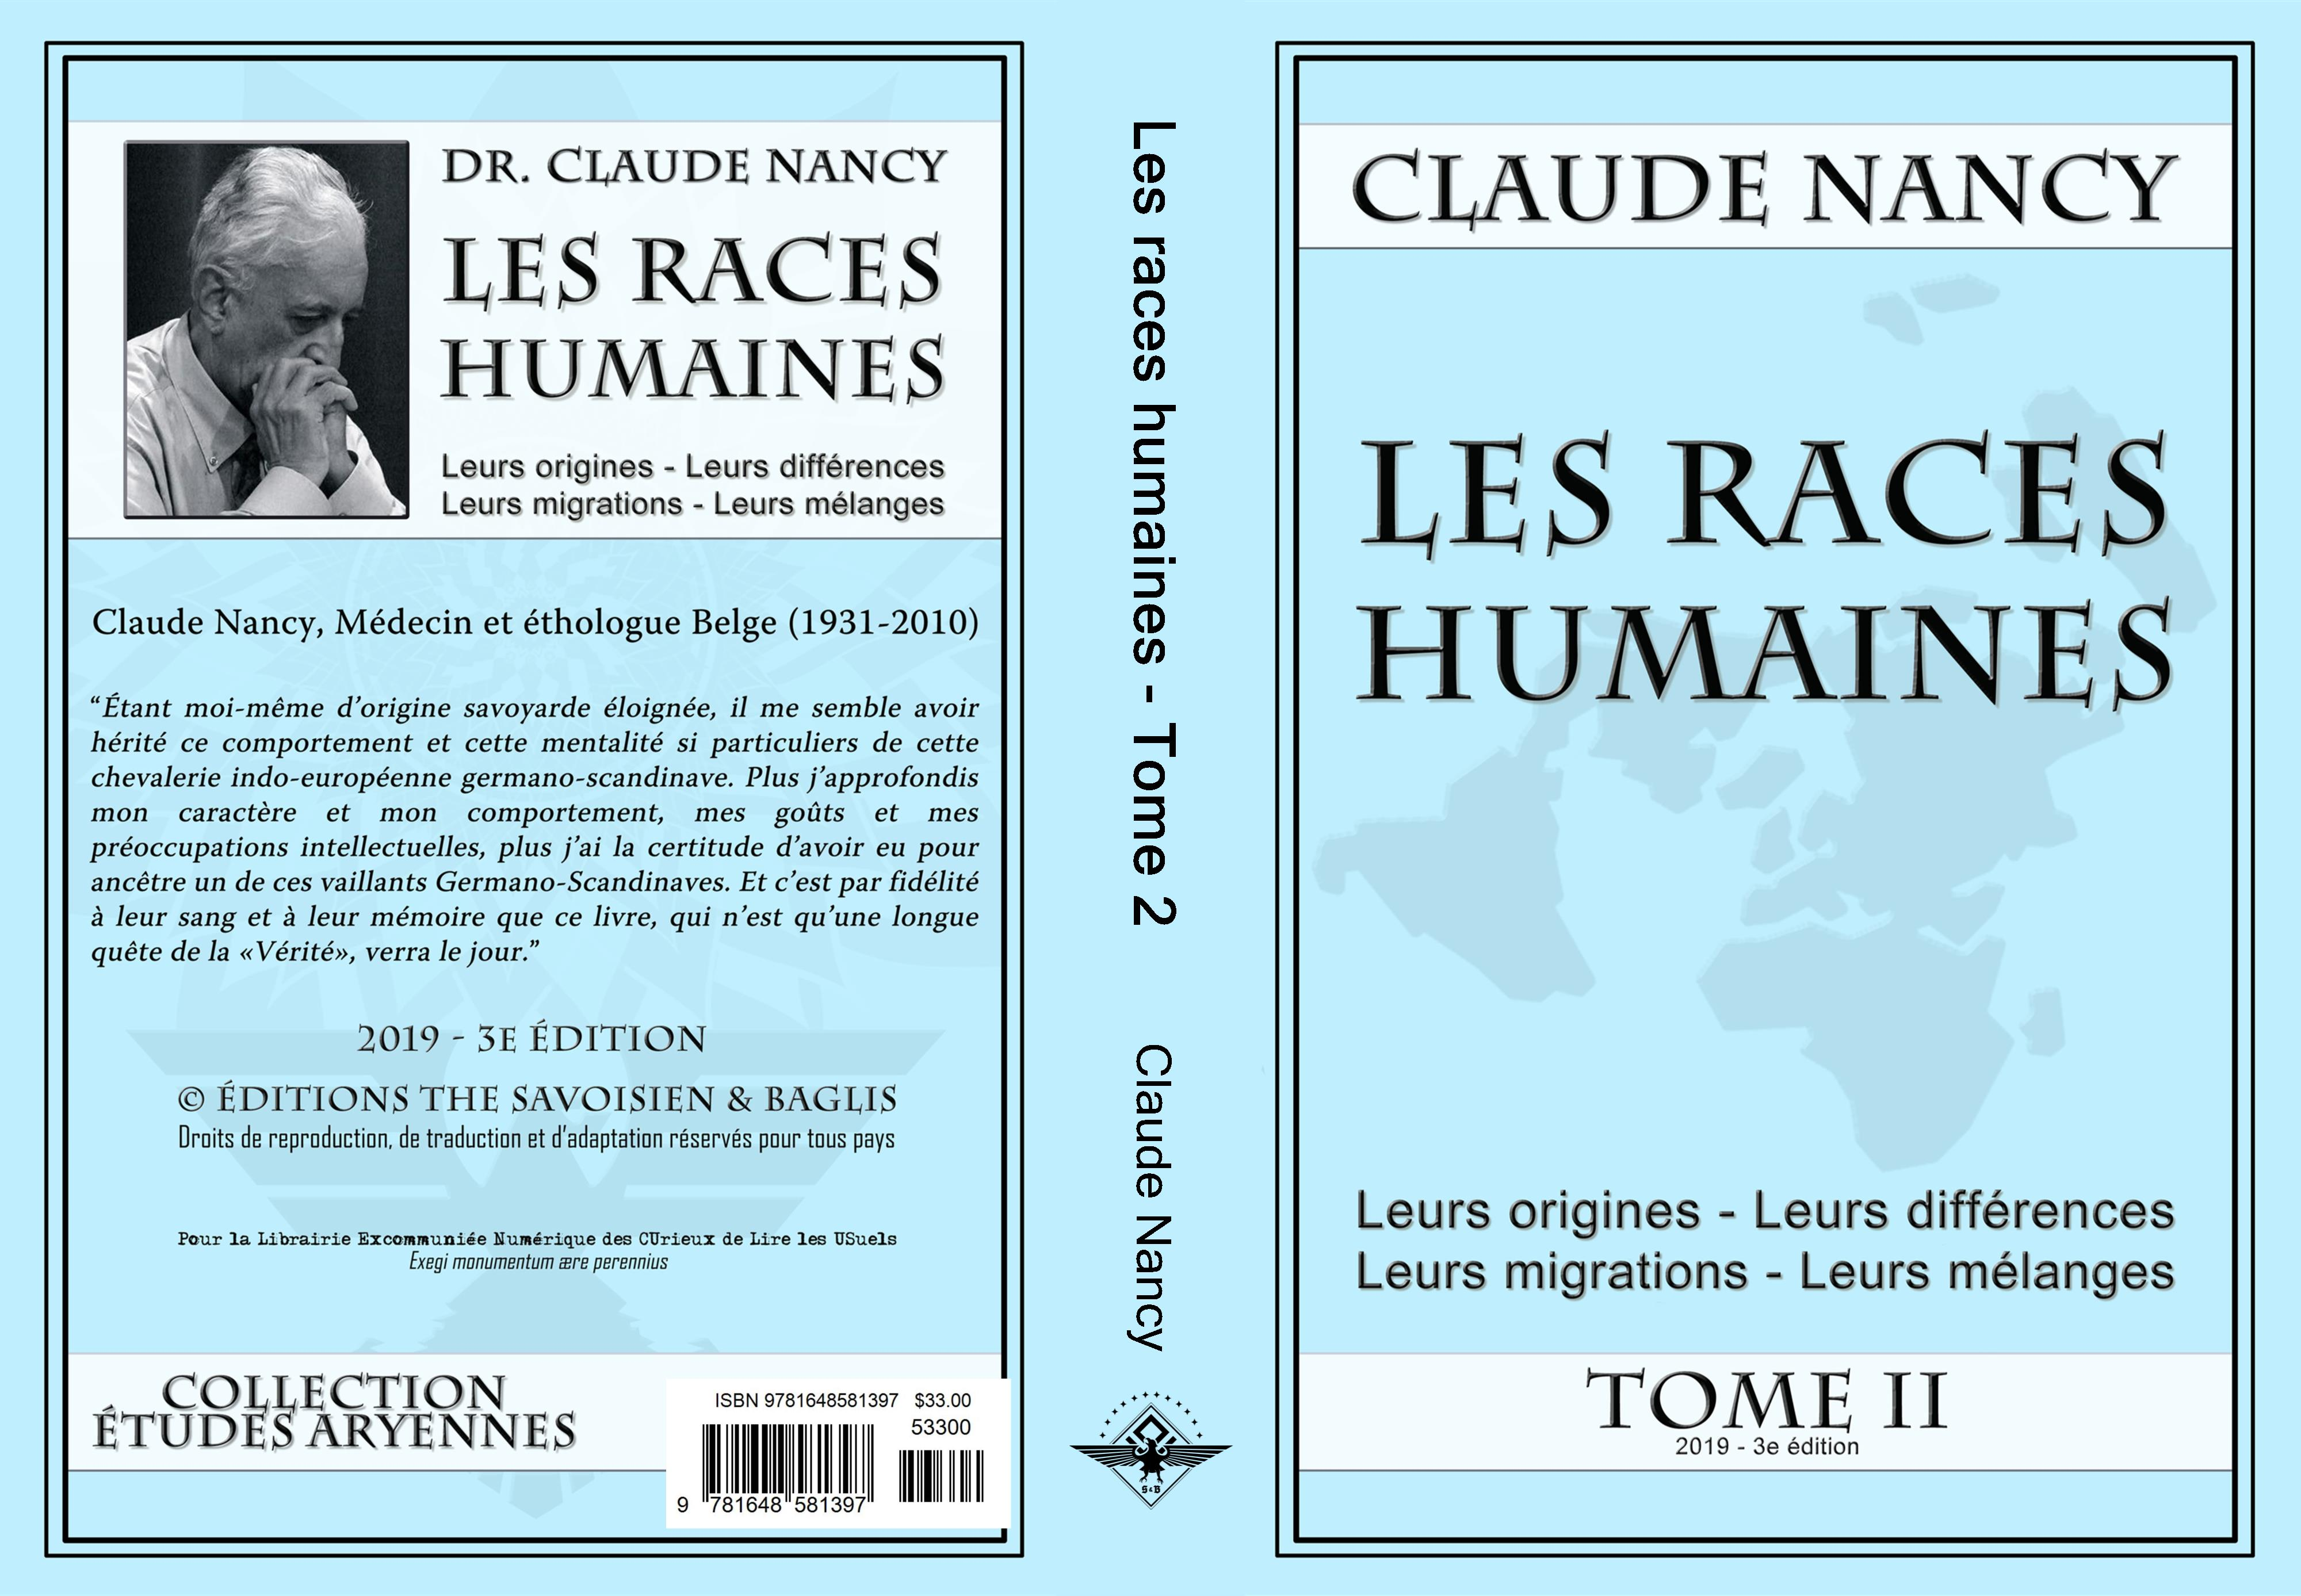 Les races humaines Tome 2 cover image